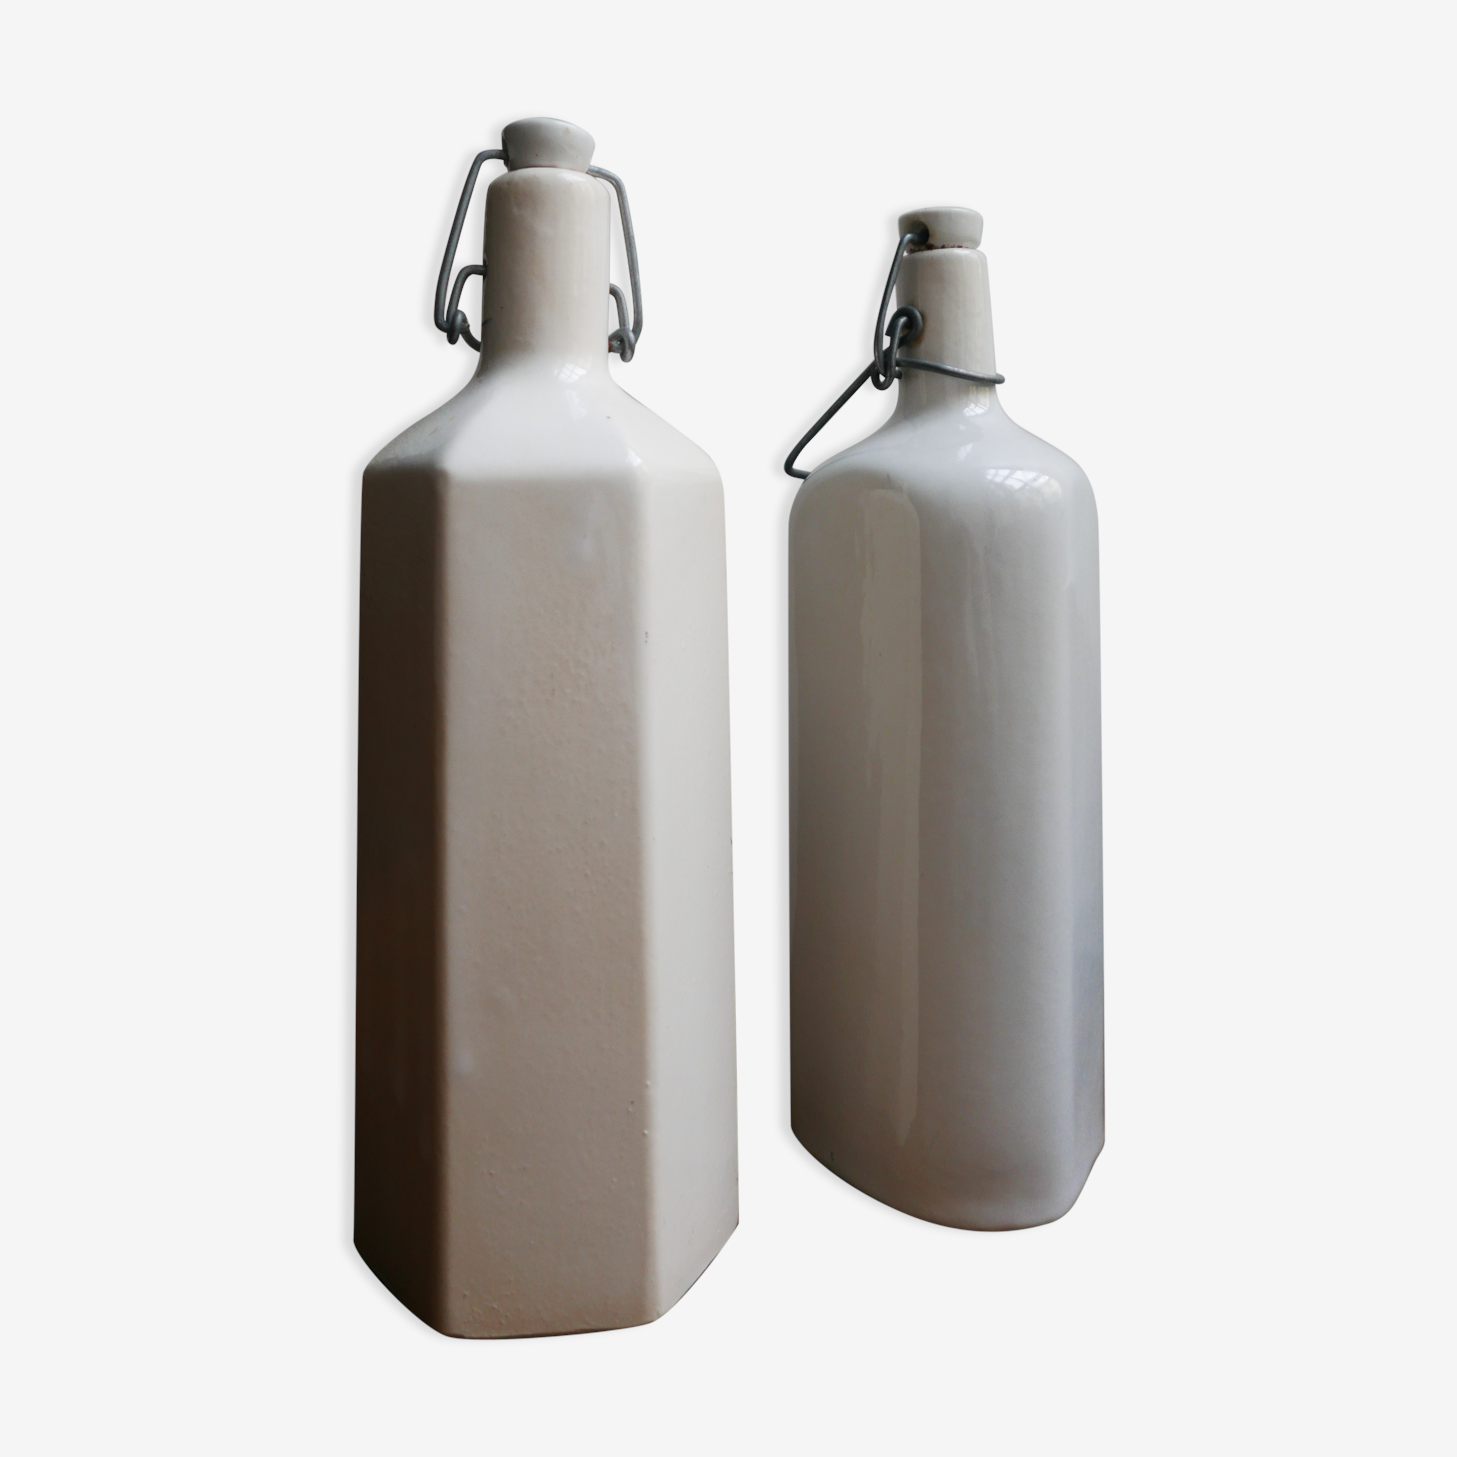 Lot of two old bottles in sandstone